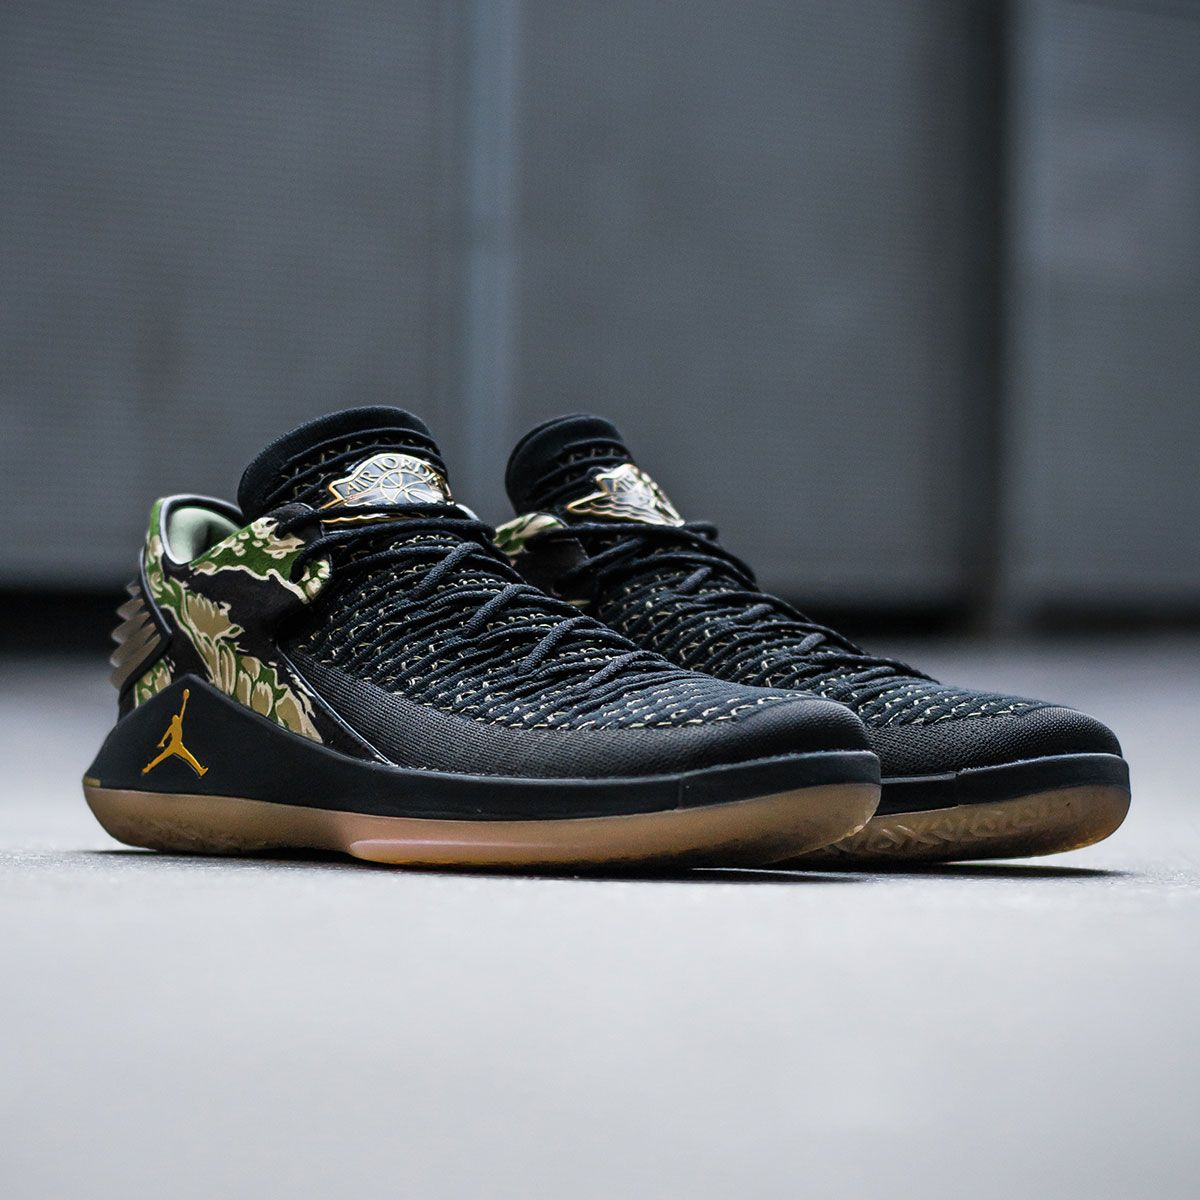 a4819987e8b9d0 These black Air Jordan XXXII Low with tiger camo around the heel and golden  accents are available now on KICKZ.com and in selected stores!